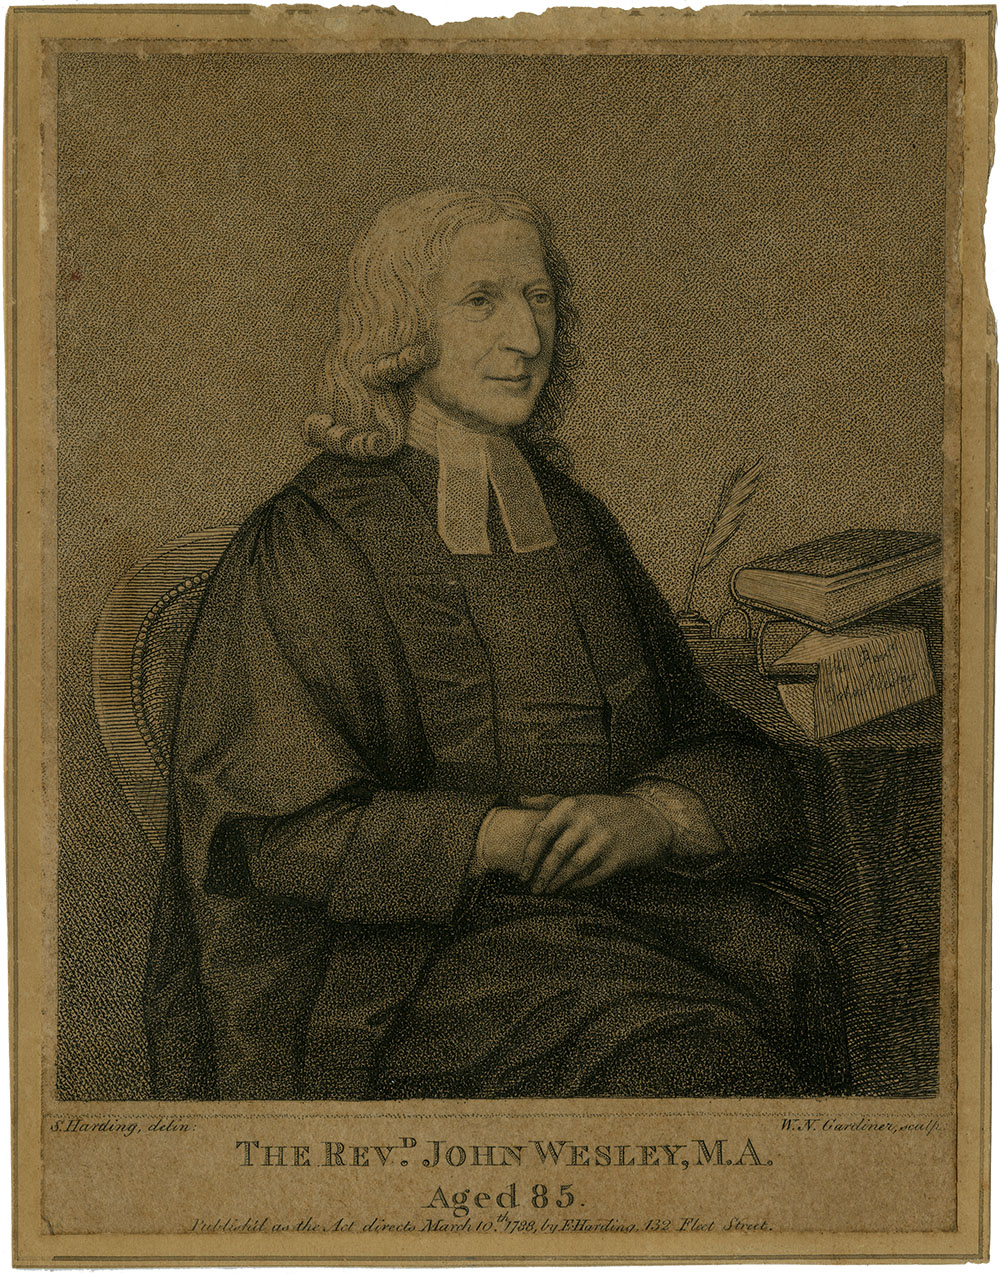 William Nelson Gardiner, The Revd John Wesley, M.A. Aged 85